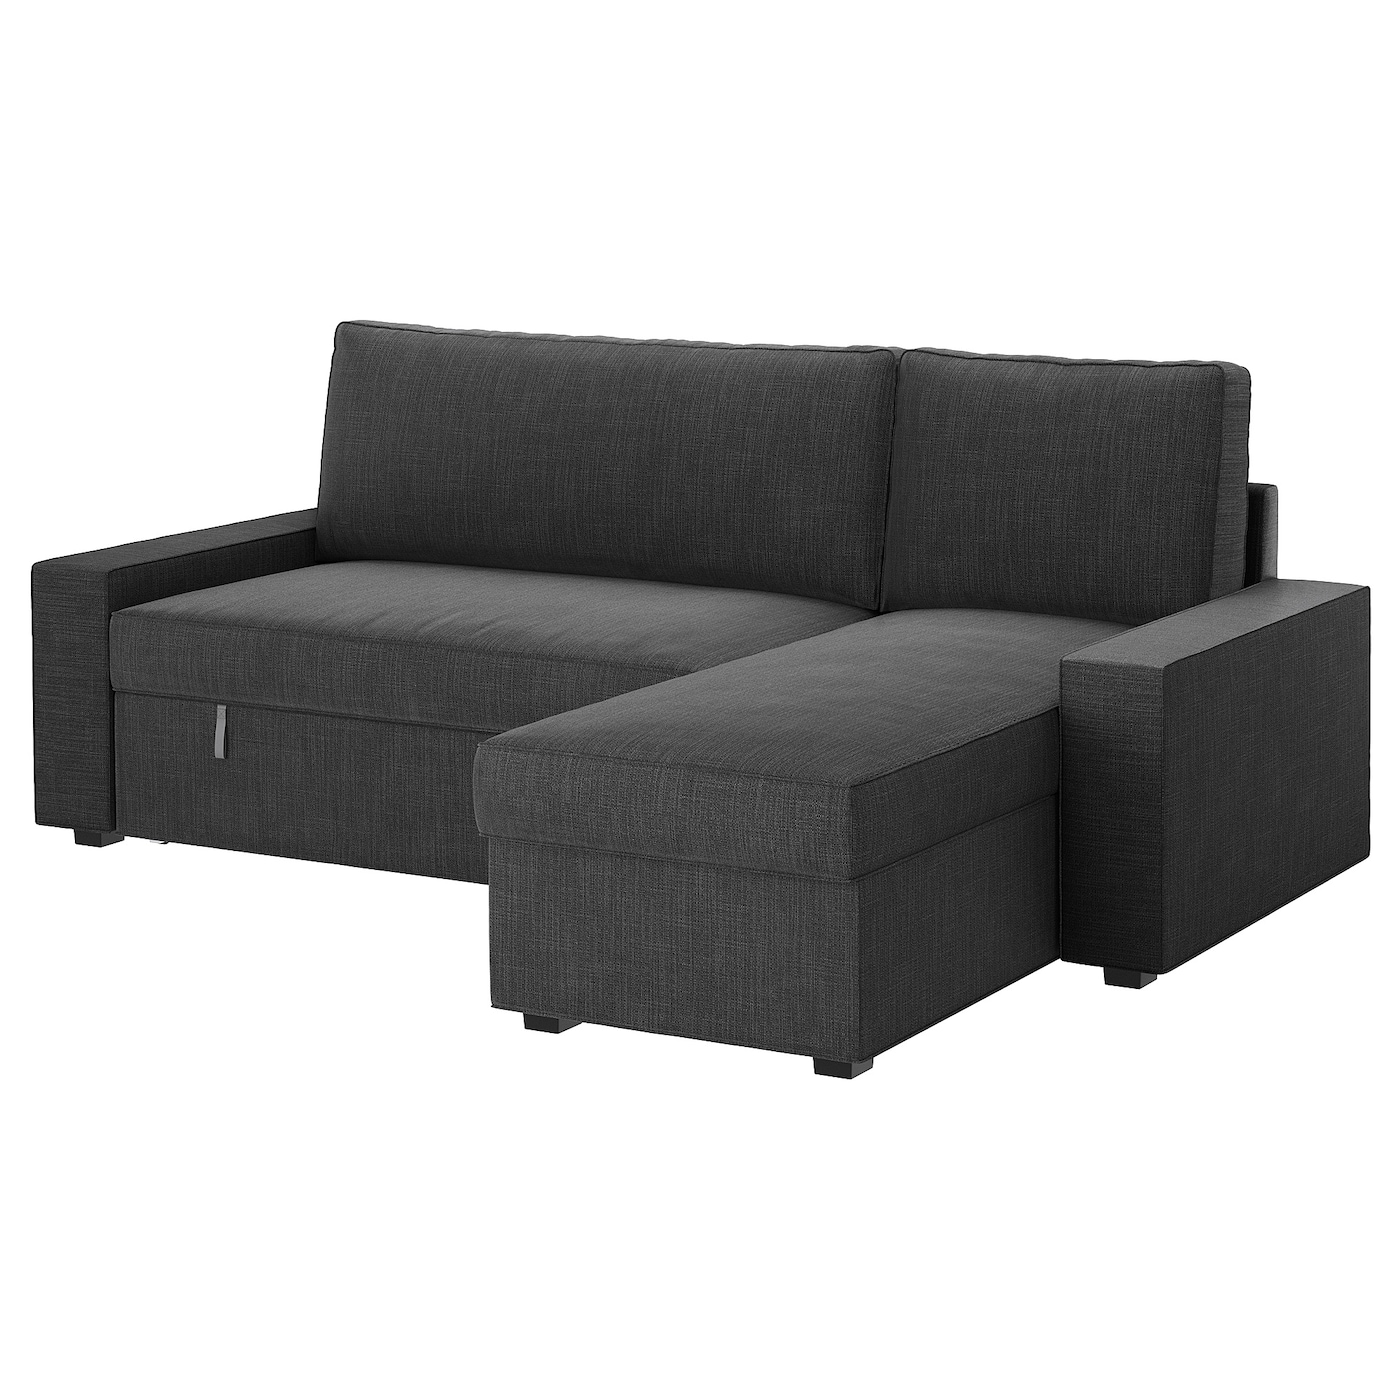 Vilasund sofa bed with chaise longue hillared anthracite for Sofa cama chaise longue piel